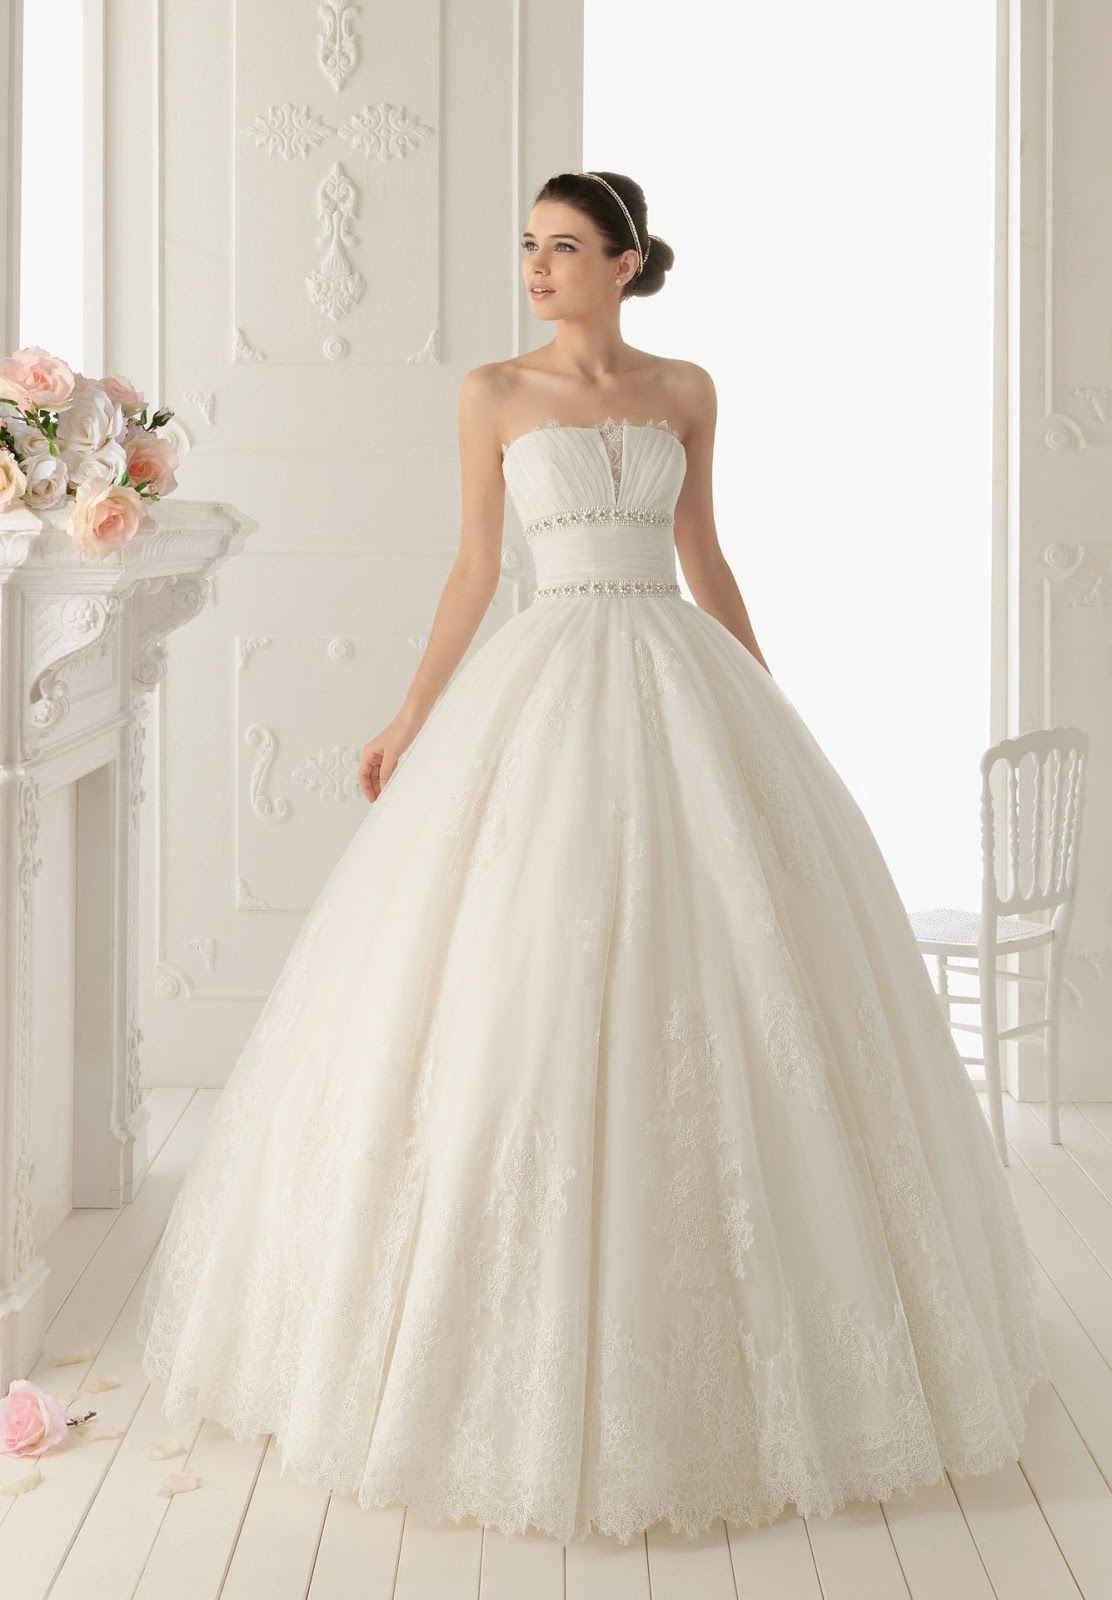 Elegant Wedding Dresses Images : Wedding dresses elegant